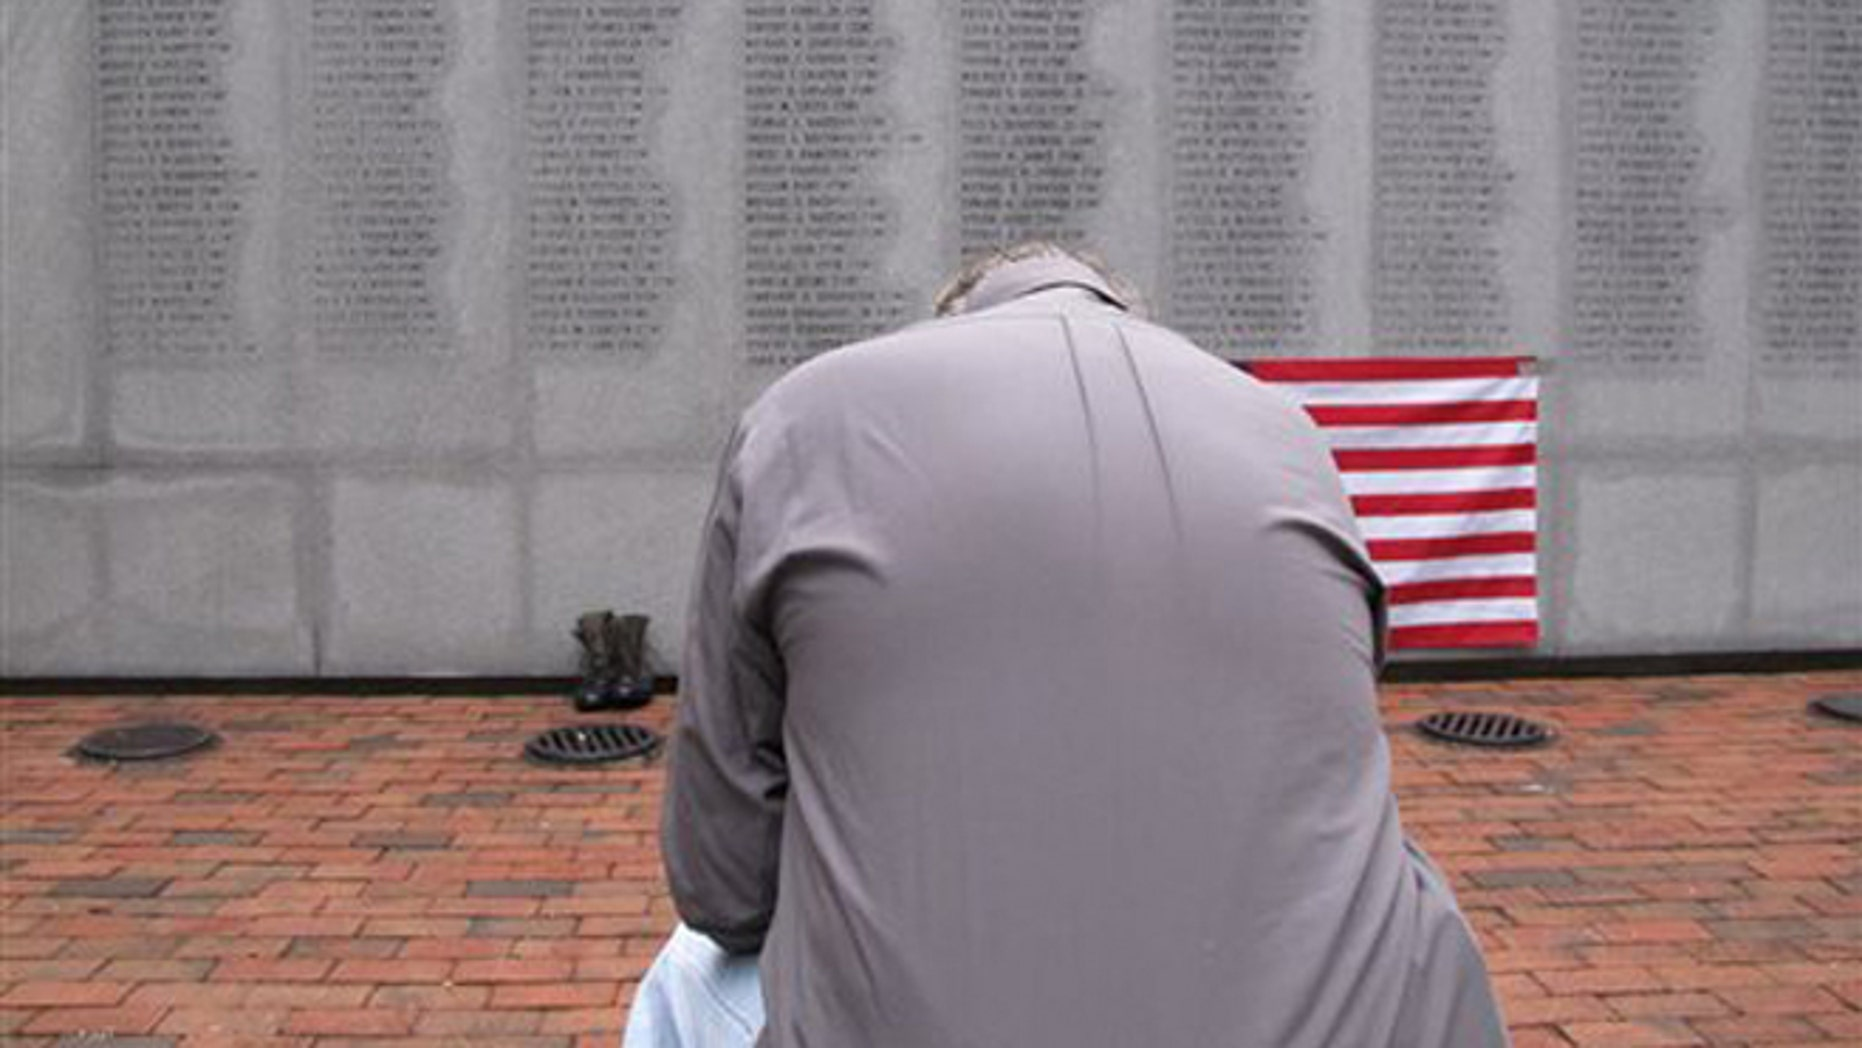 "Oct. 23, 2013: Former Marine Ed Ayers of Scranton, Penn., hangs his head and weeps at the Beirut Bombing Memorial in Jacksonville, N.C. Wednesday was the 30th anniversary of a terrorist bombing that killed 241 U.S. service members. Ayers, who did two tours in Lebanon, said the peacekeeping mission there was worth it but, ""I wish it was handled differently."""